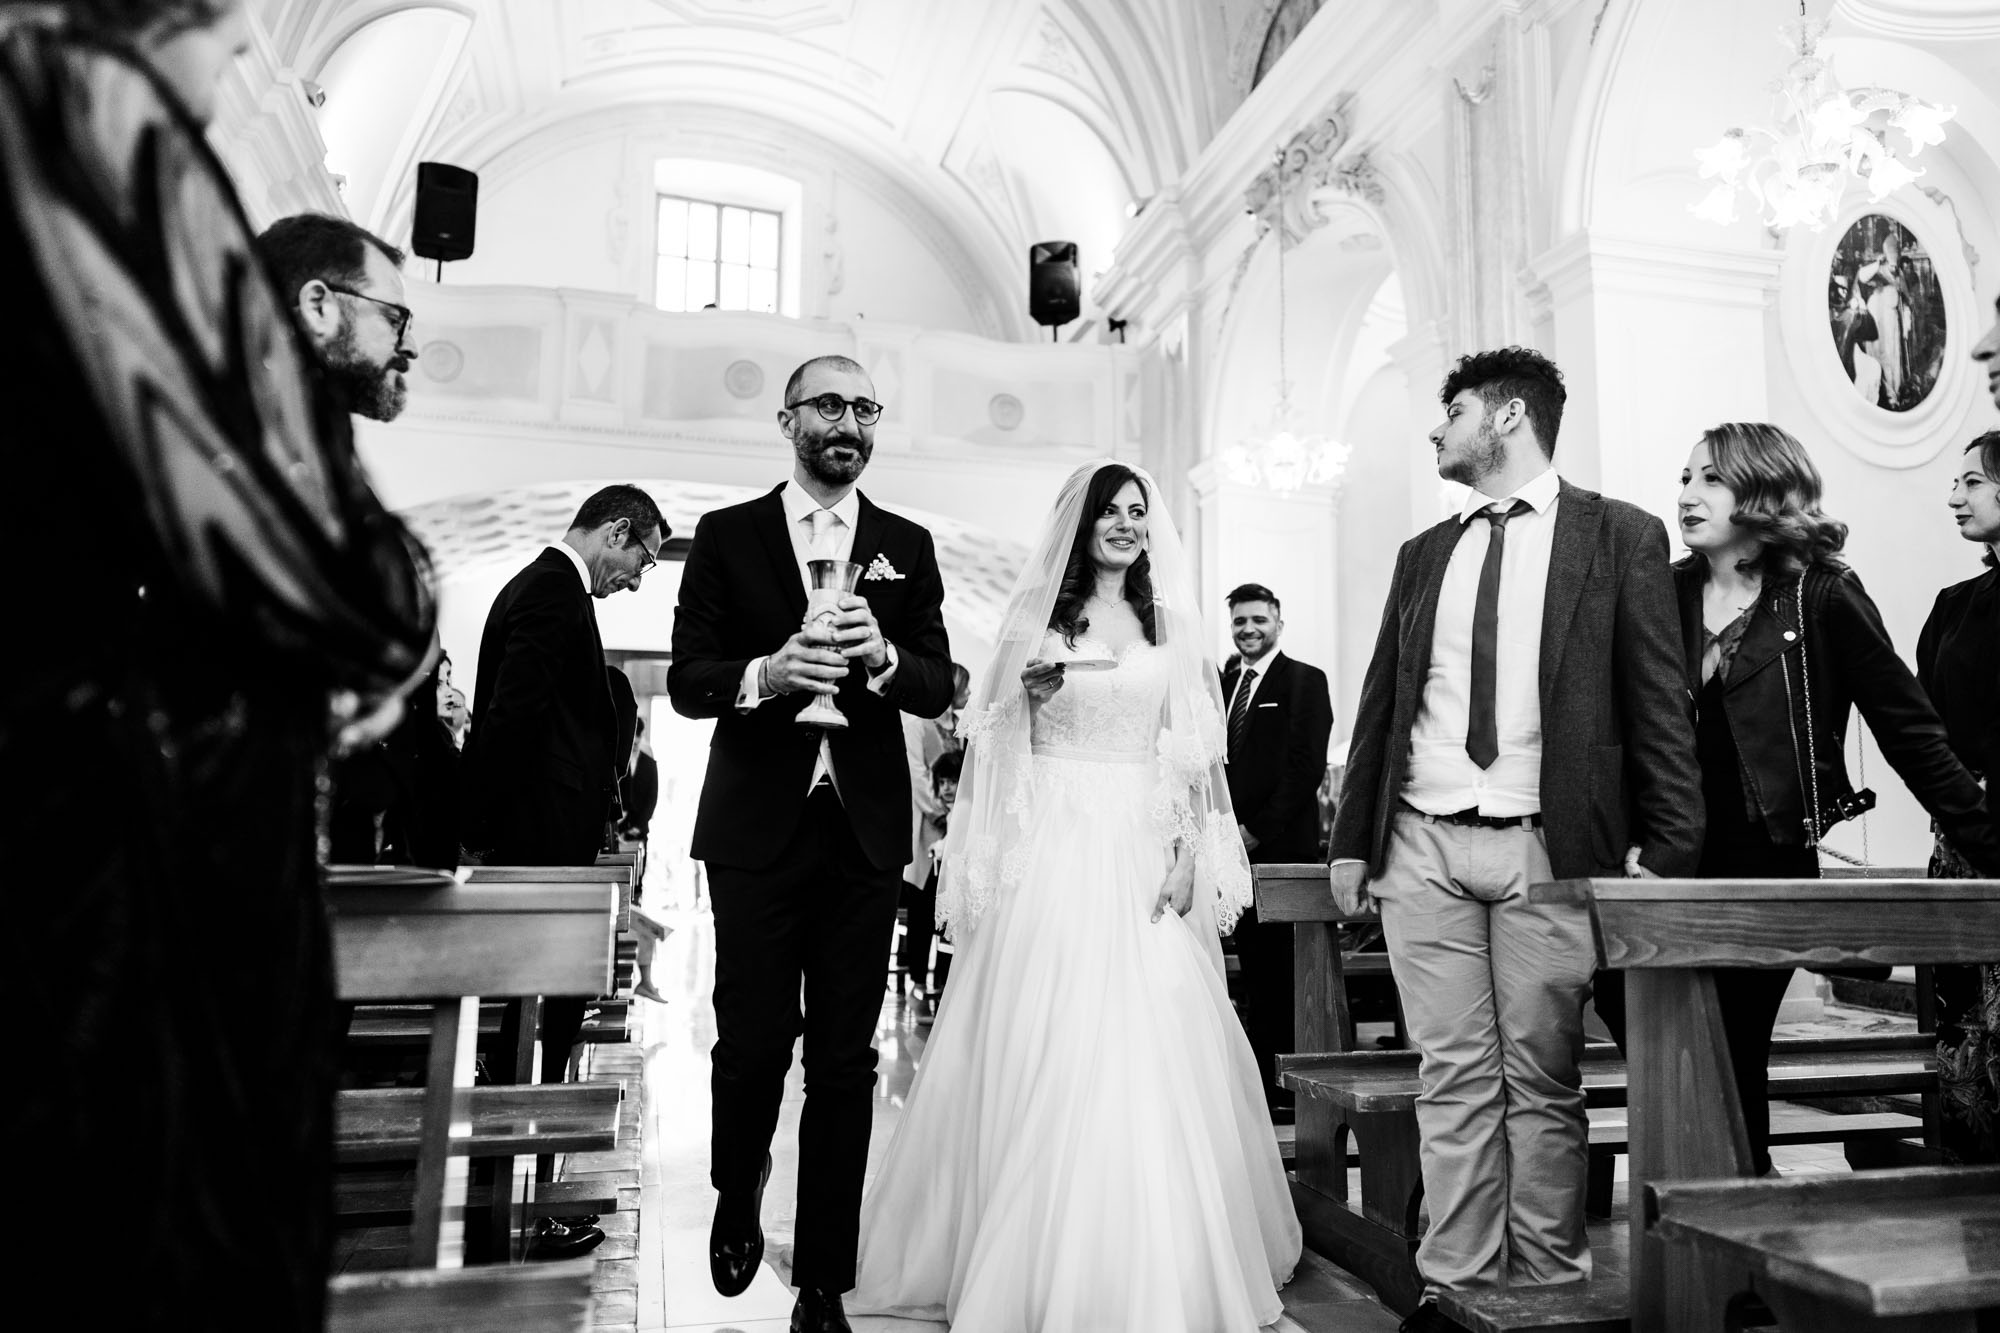 wedding-in-italy-mary-mimmo-28